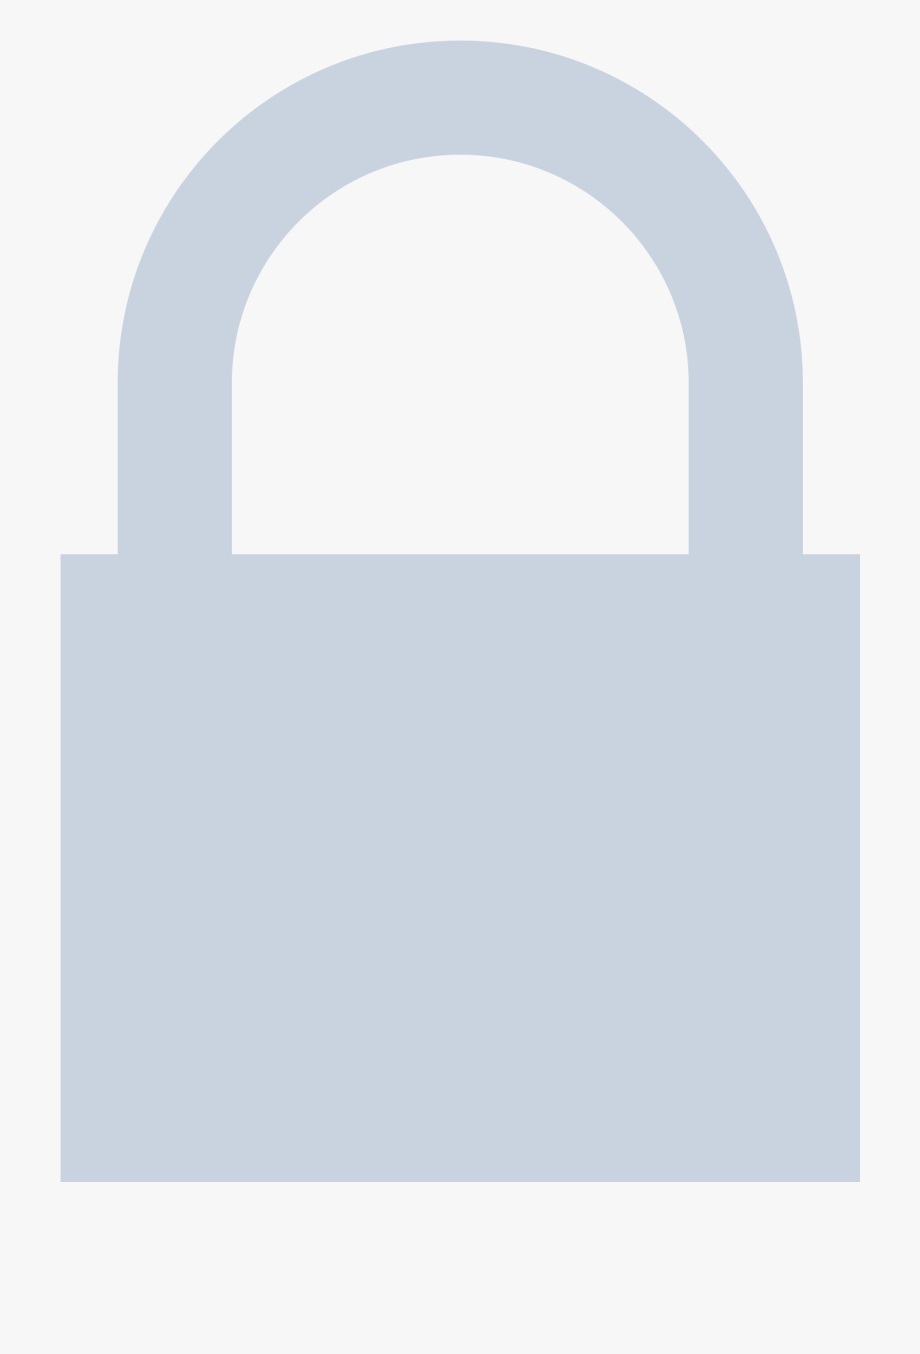 Padlock Png Photos.